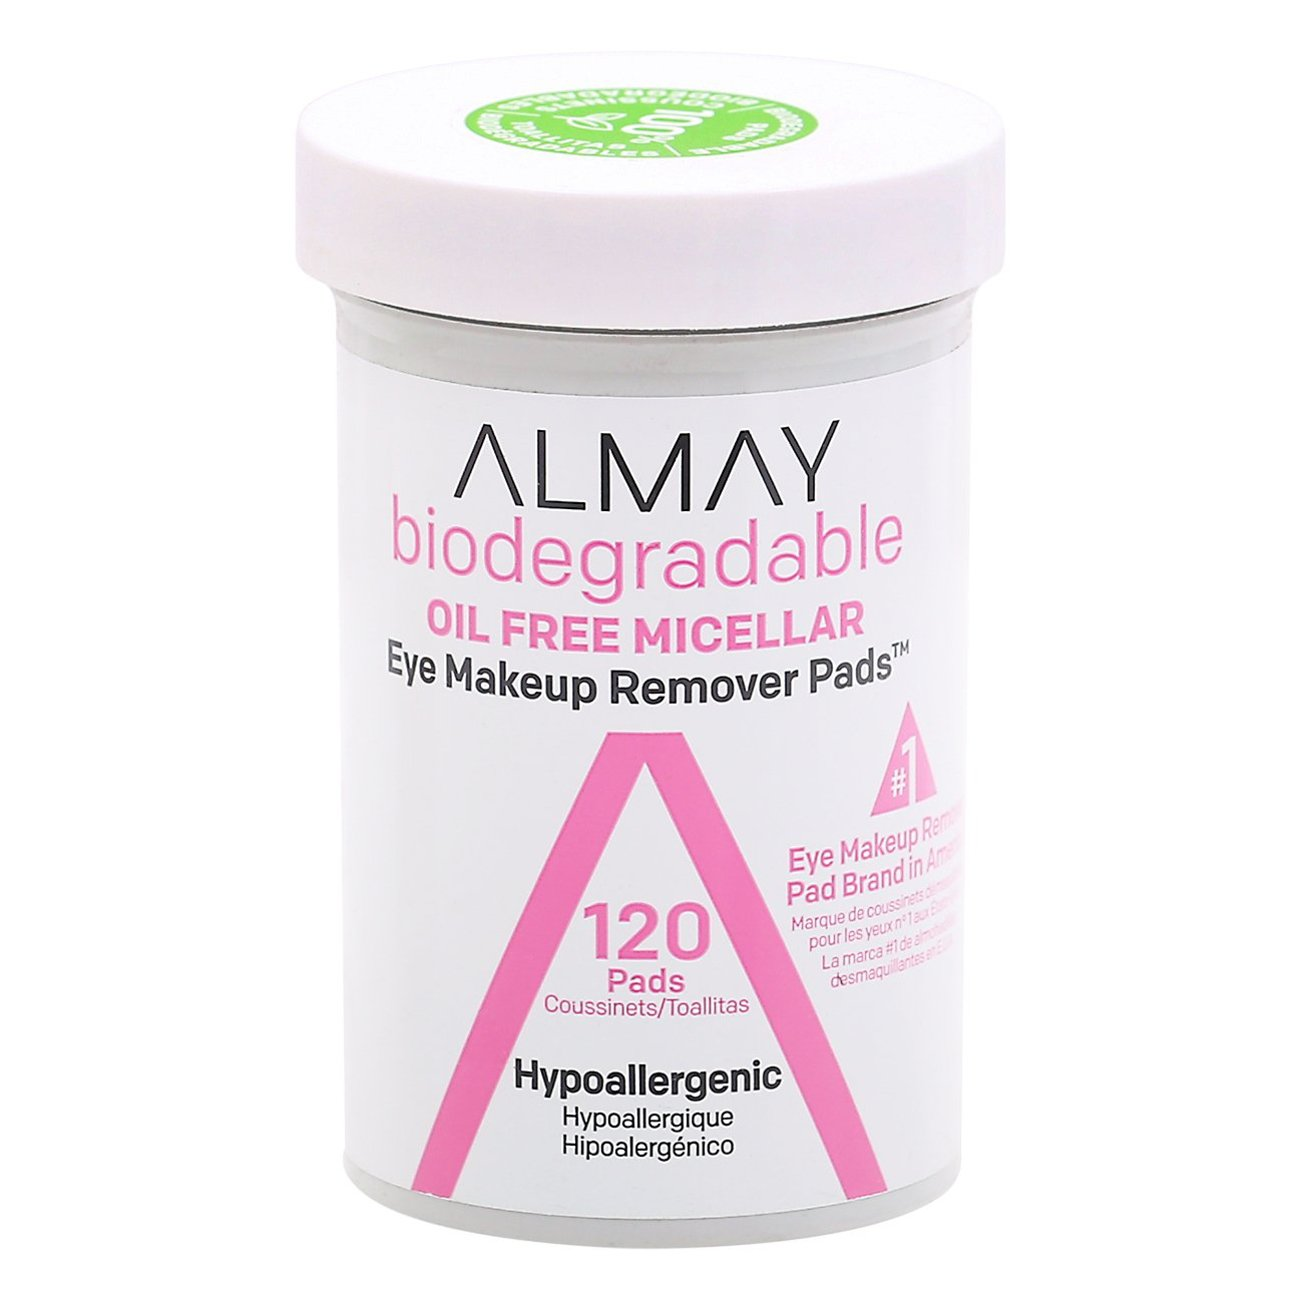 Almay Oil Free Gentle Eye Makeup Remover Pads Shop Makeup Remover